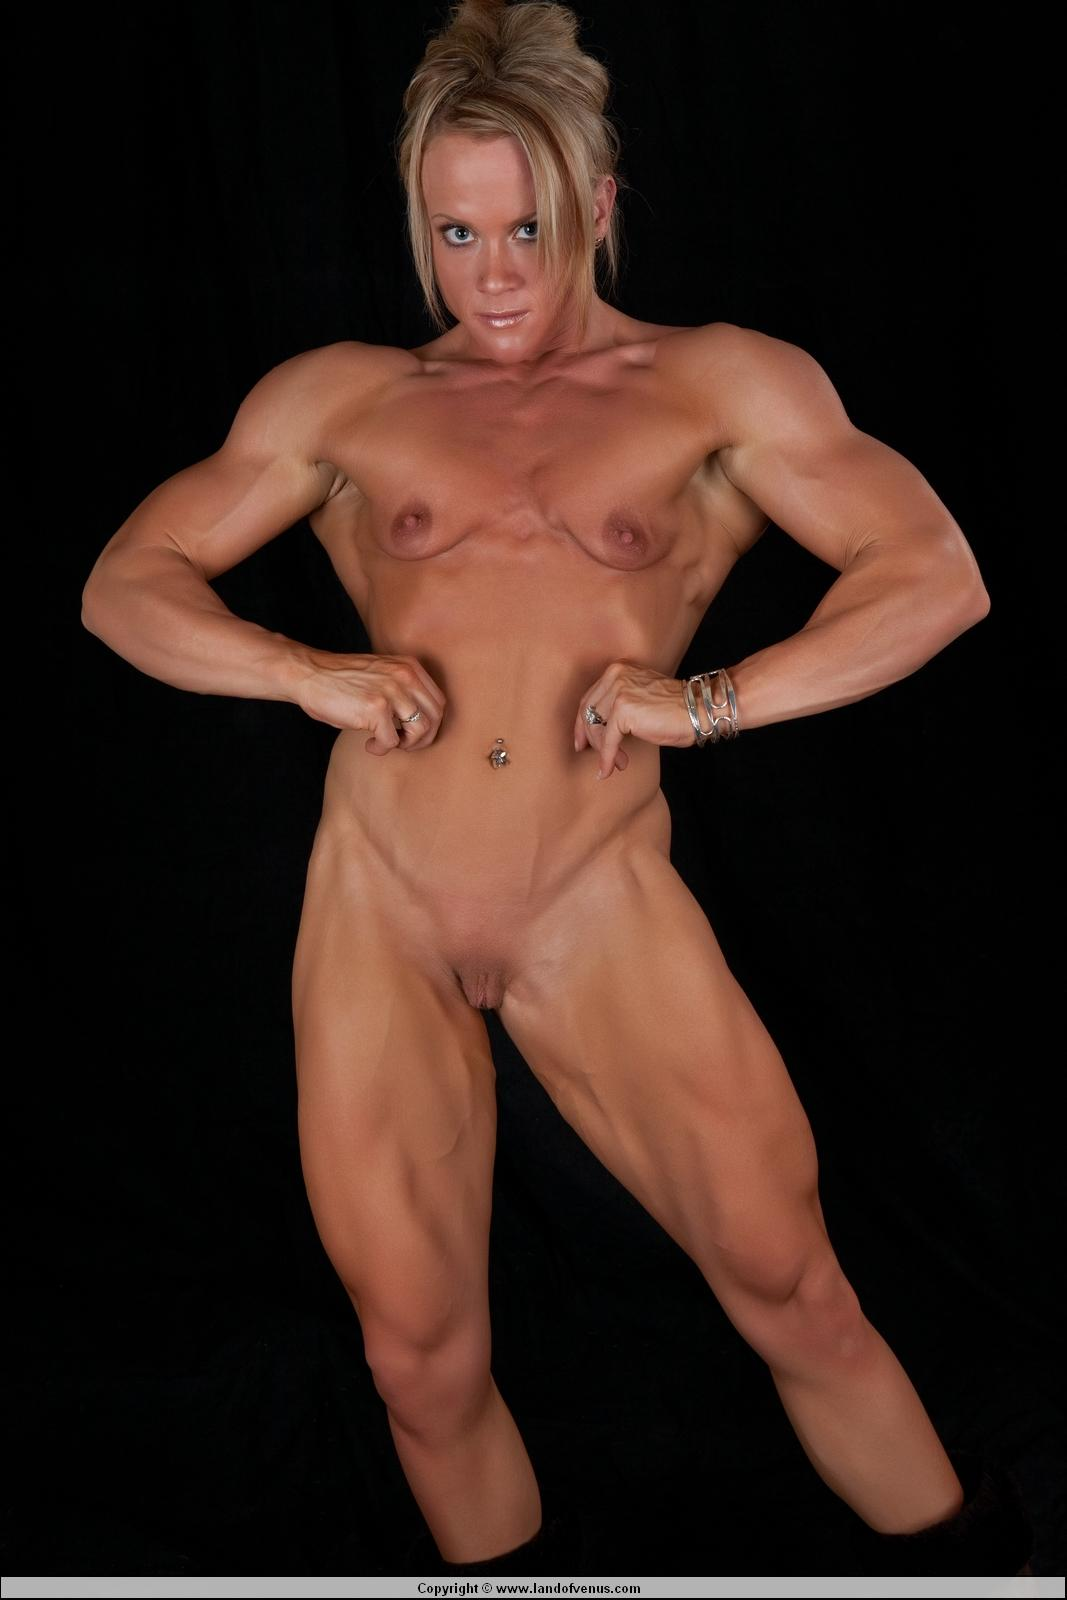 Women Bodybuilders In The Nude